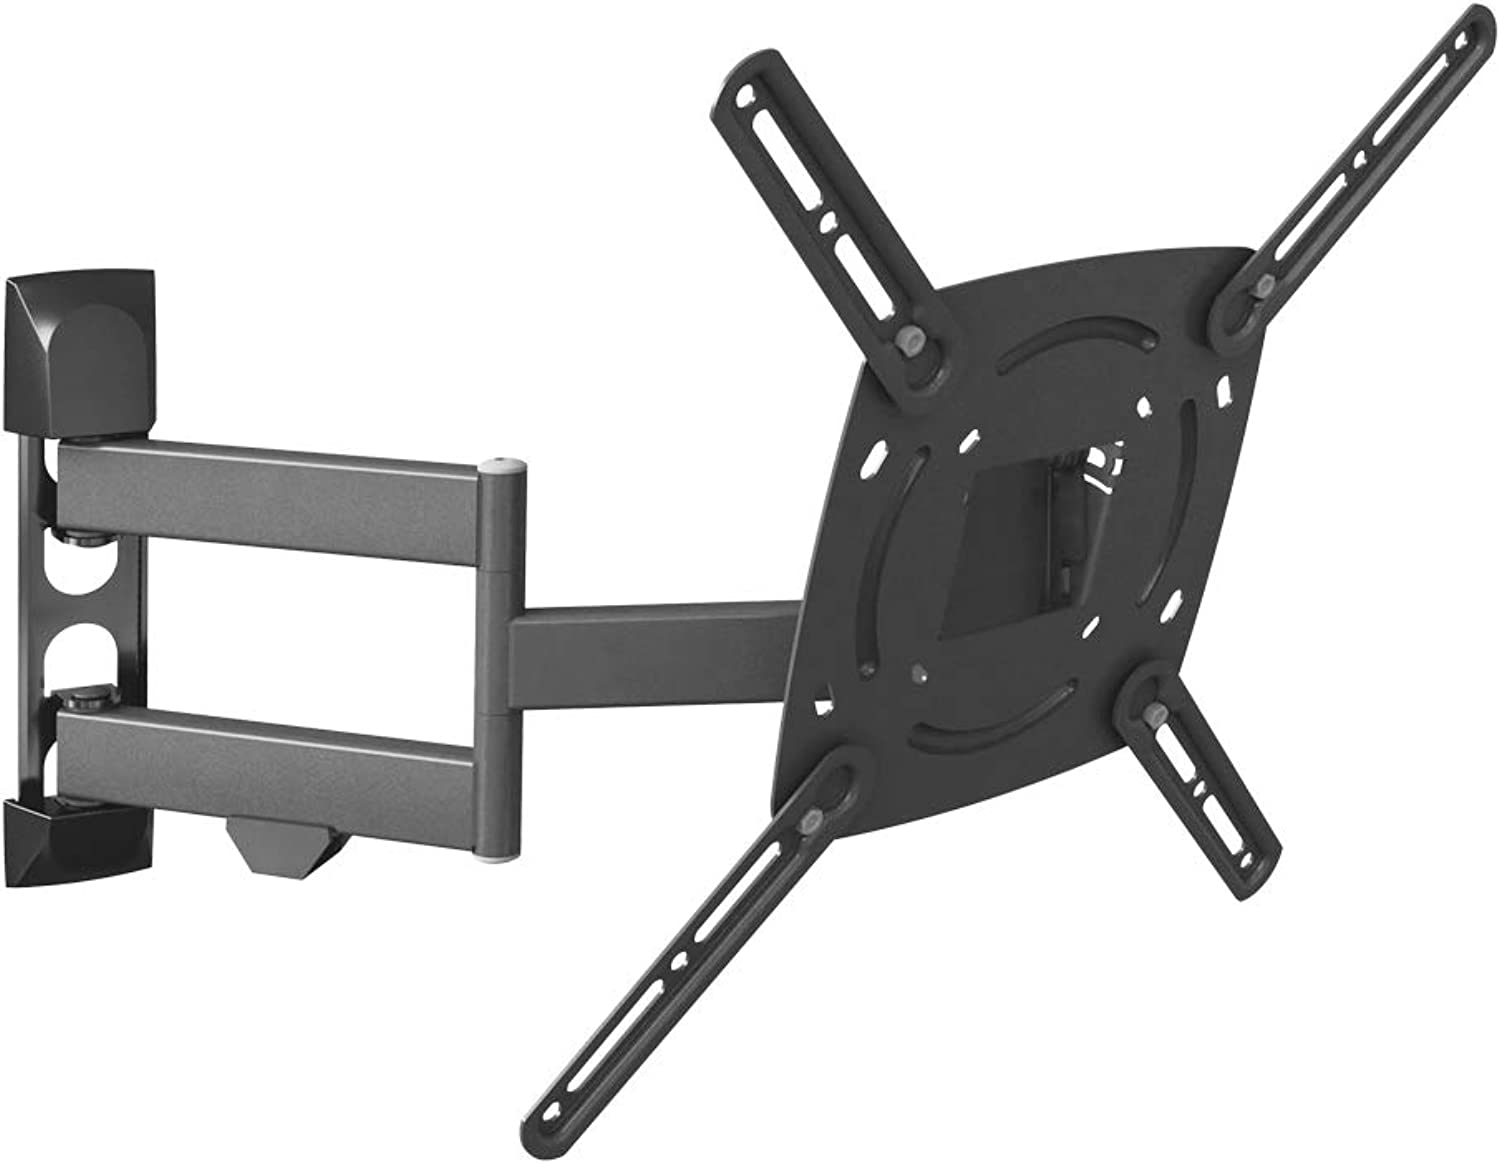 Barkan L4TVM Full Motion Curved Flat TV Wall Mount for 29  -65  Screens up to 7 lbs, Articulating. 10 Year Warranty.